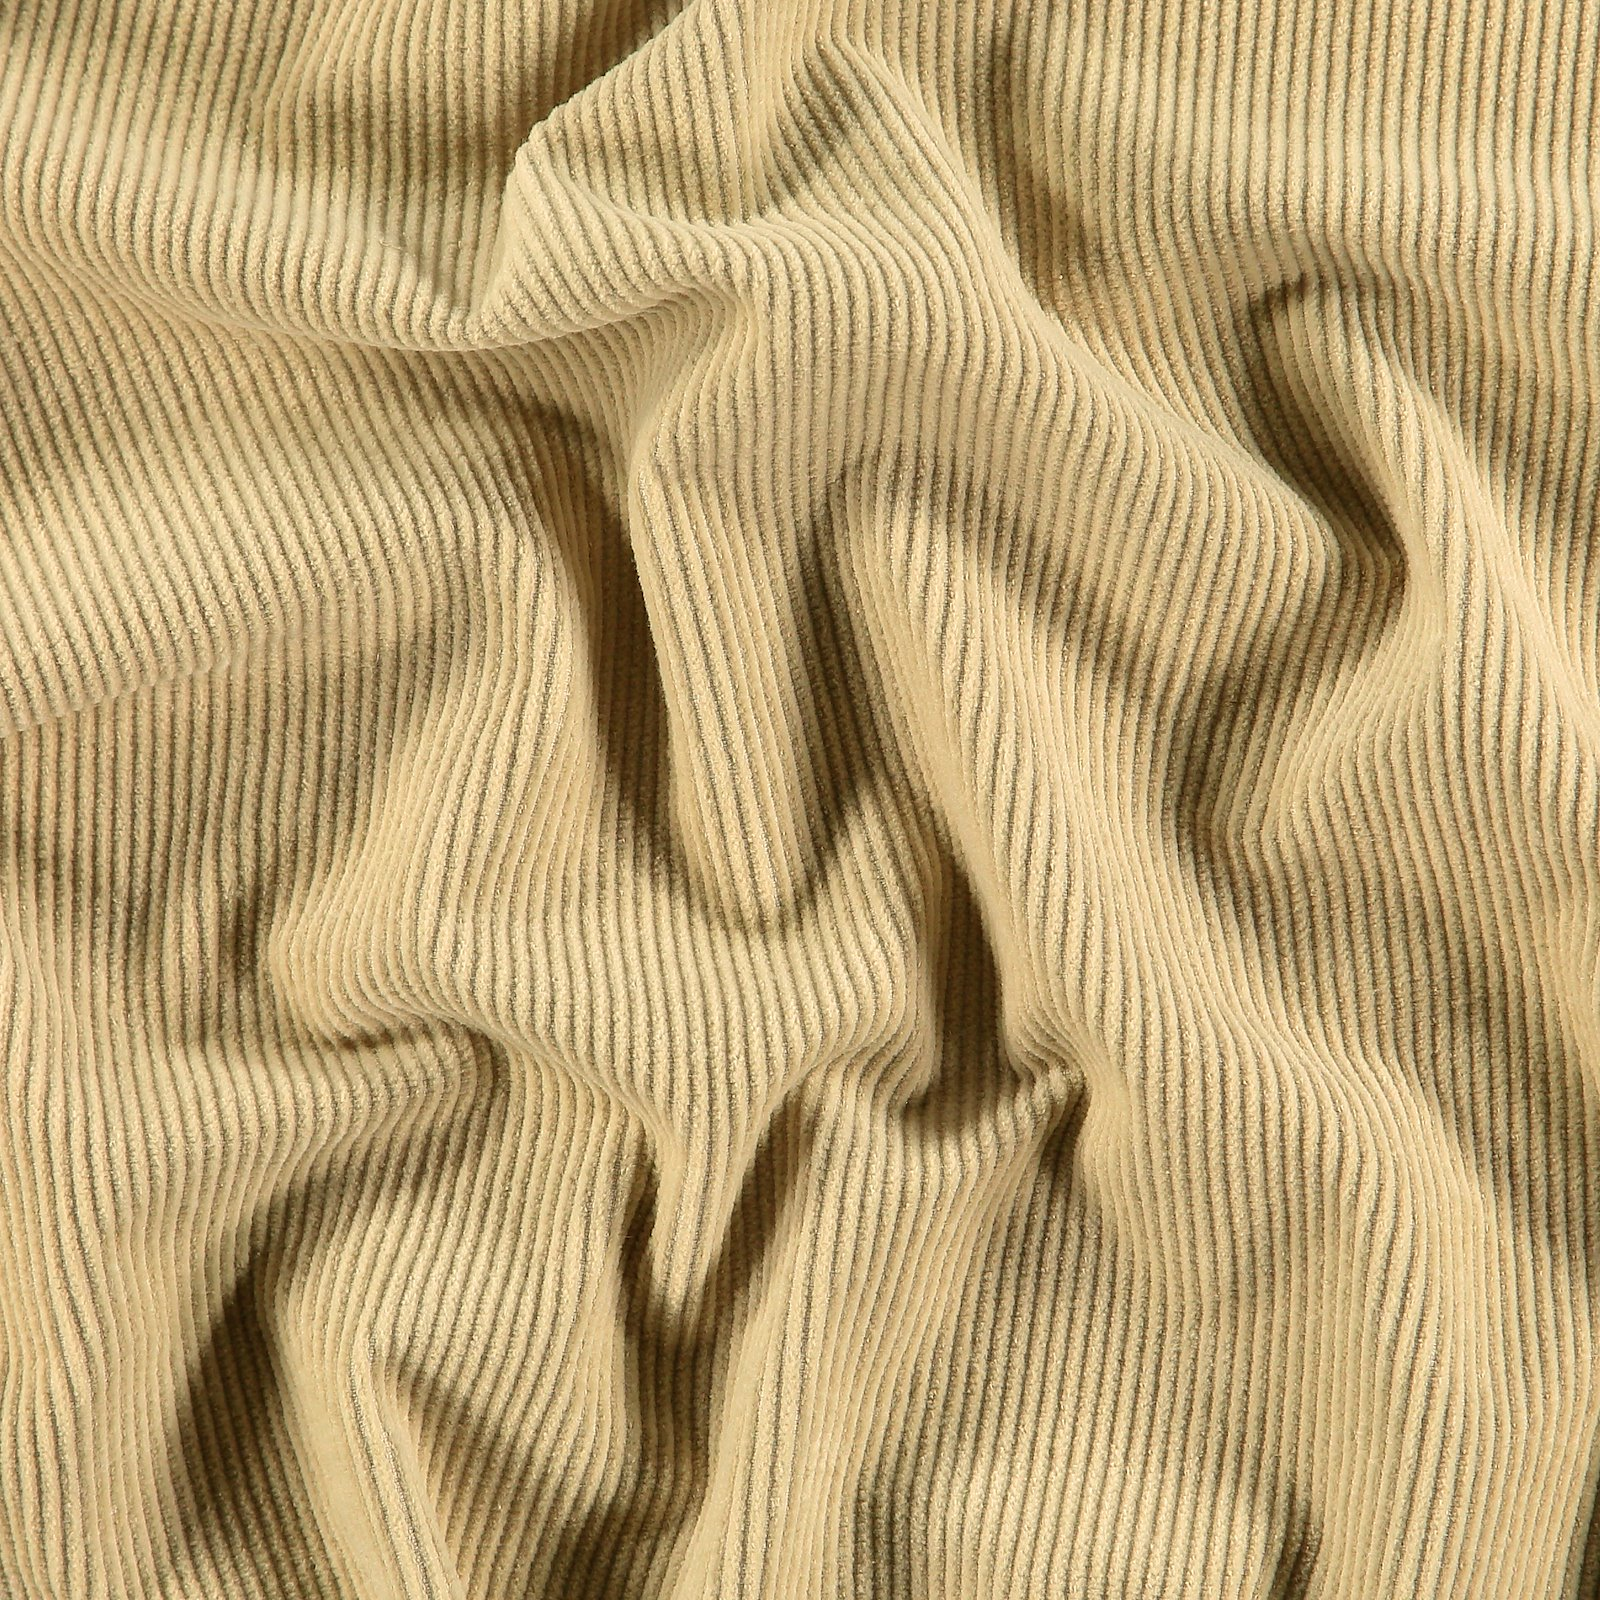 Corduroy 8 wales sand 430827_pack